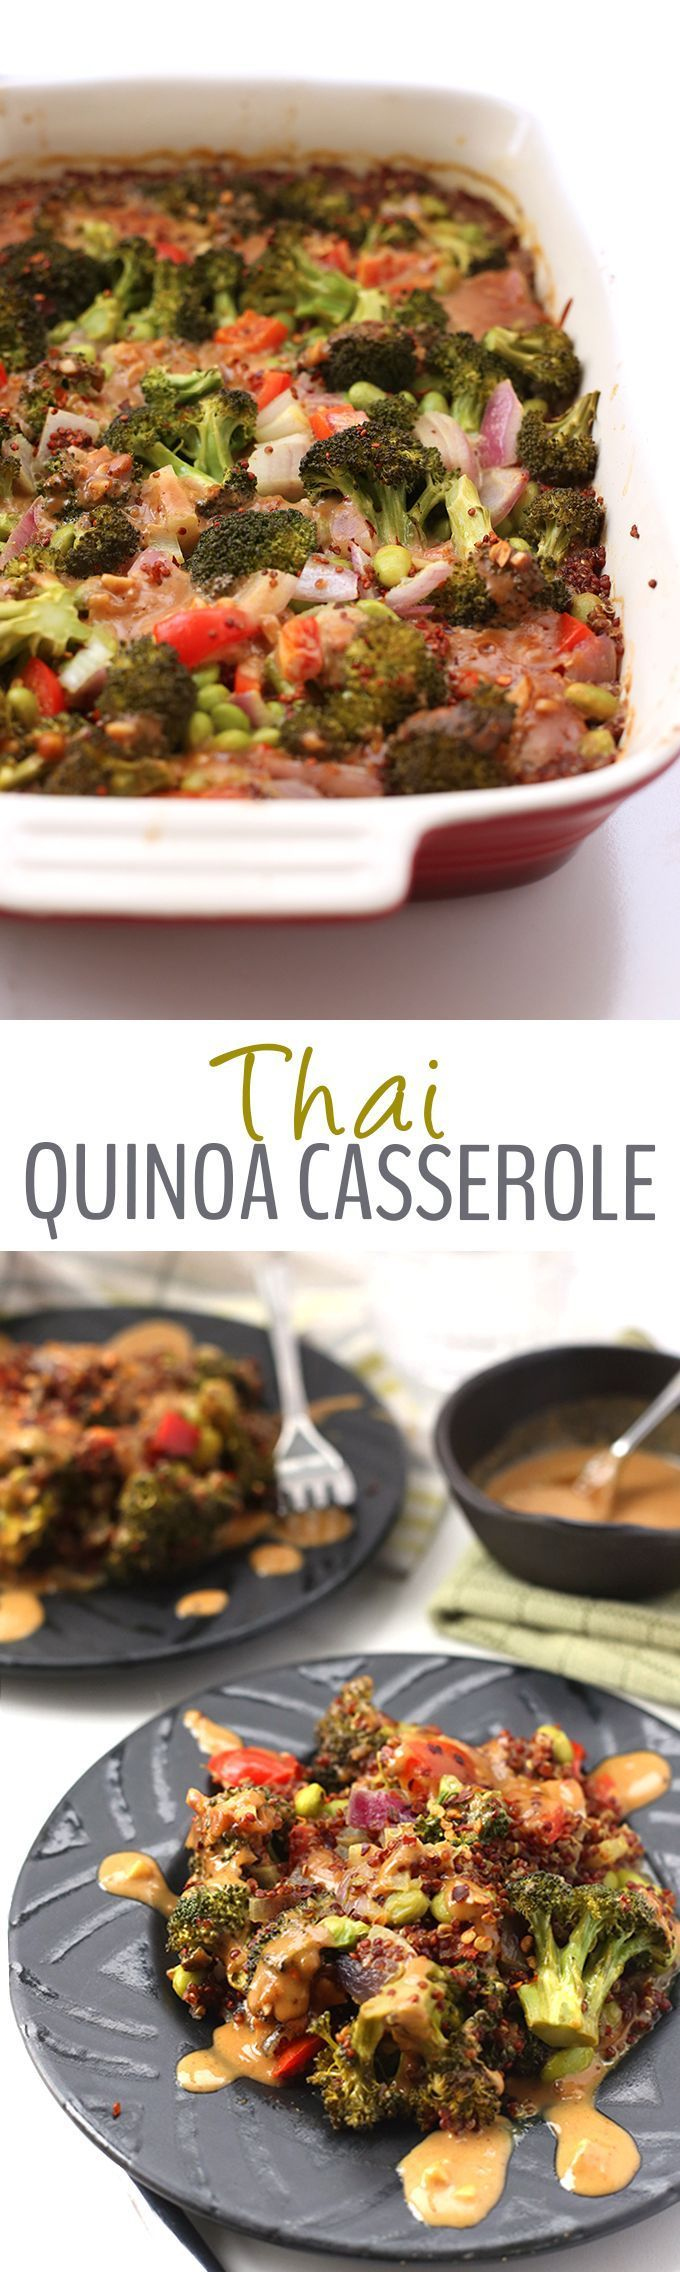 A quick and easy one-pan meal, this Thai Quinoa Casserole makes a flavorful vegetarian dinner recipe for the whole family. Topped with a zesty peanut sauce, your weekday dinners are officially complete!